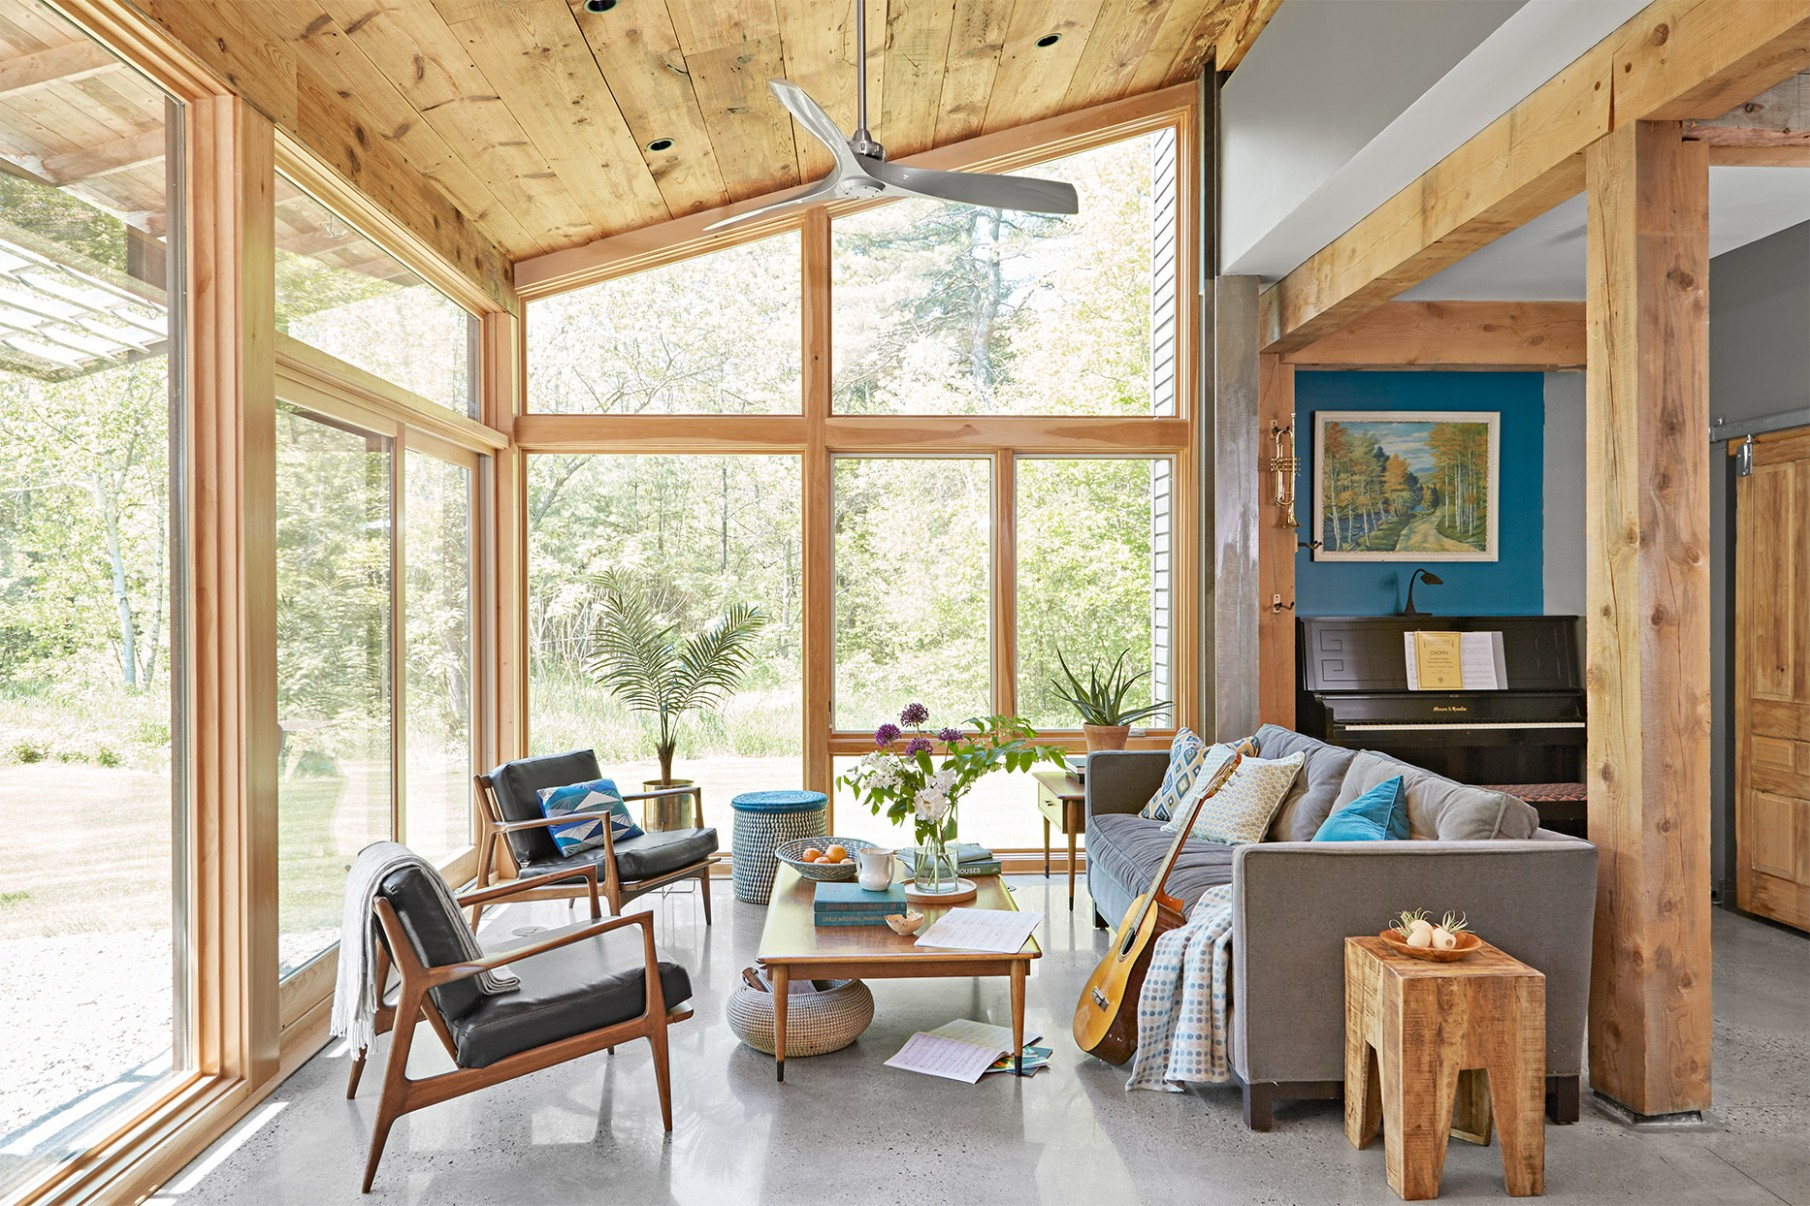 11 Sunroom Decorating Ideas for a Bright, Relaxing Space  Better  - Small Sunroom Off Bedroom